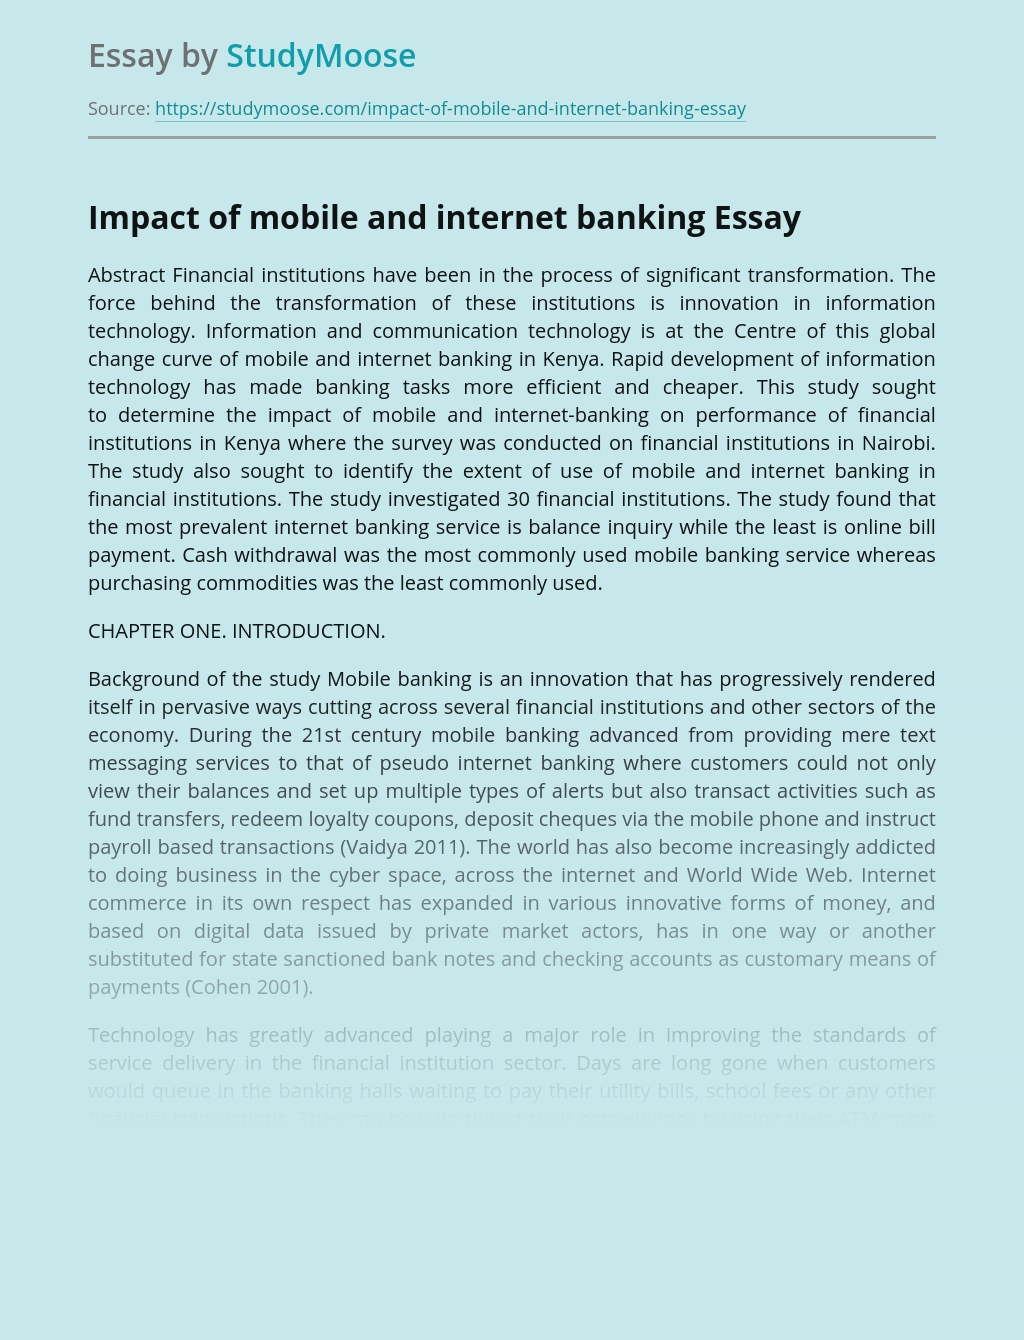 Impact of mobile and internet banking